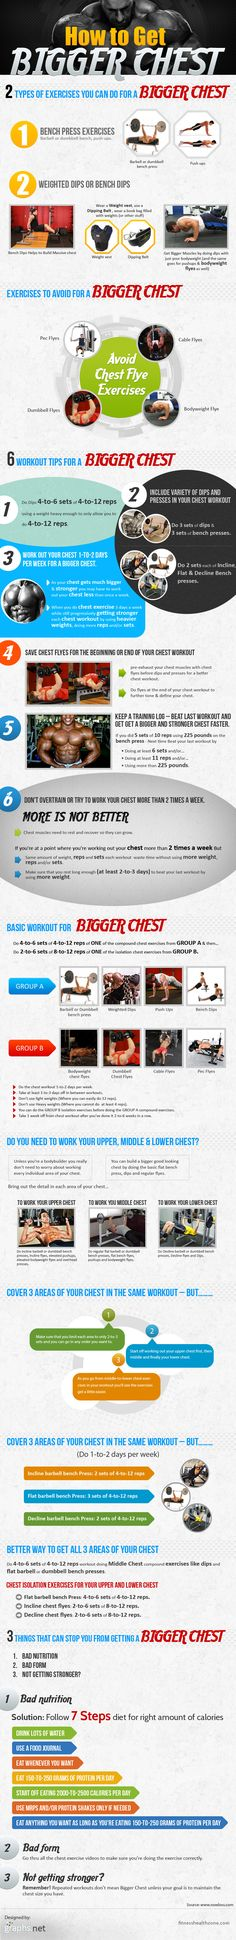 Here's a pretty cool infographic about building a bigger chest. I really enjoy infographics and I'm hoping you do too.  How to Get a Bigger Chest  It's a dr